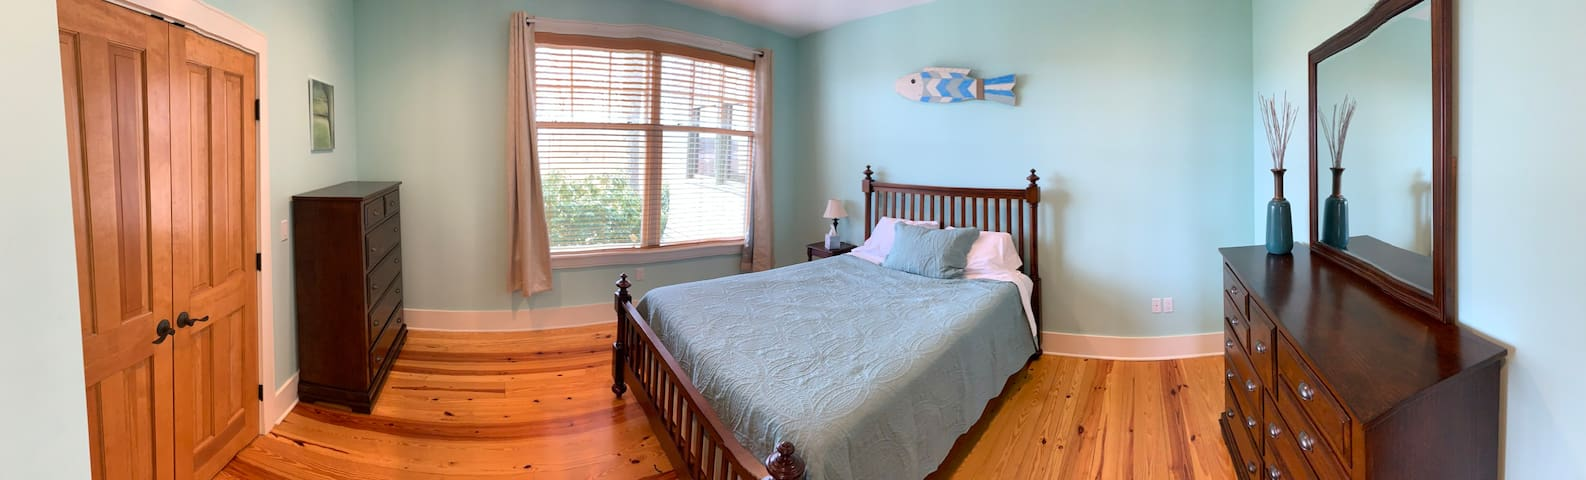 This guest room has 1 queen bed and features a large window overlooking the water.